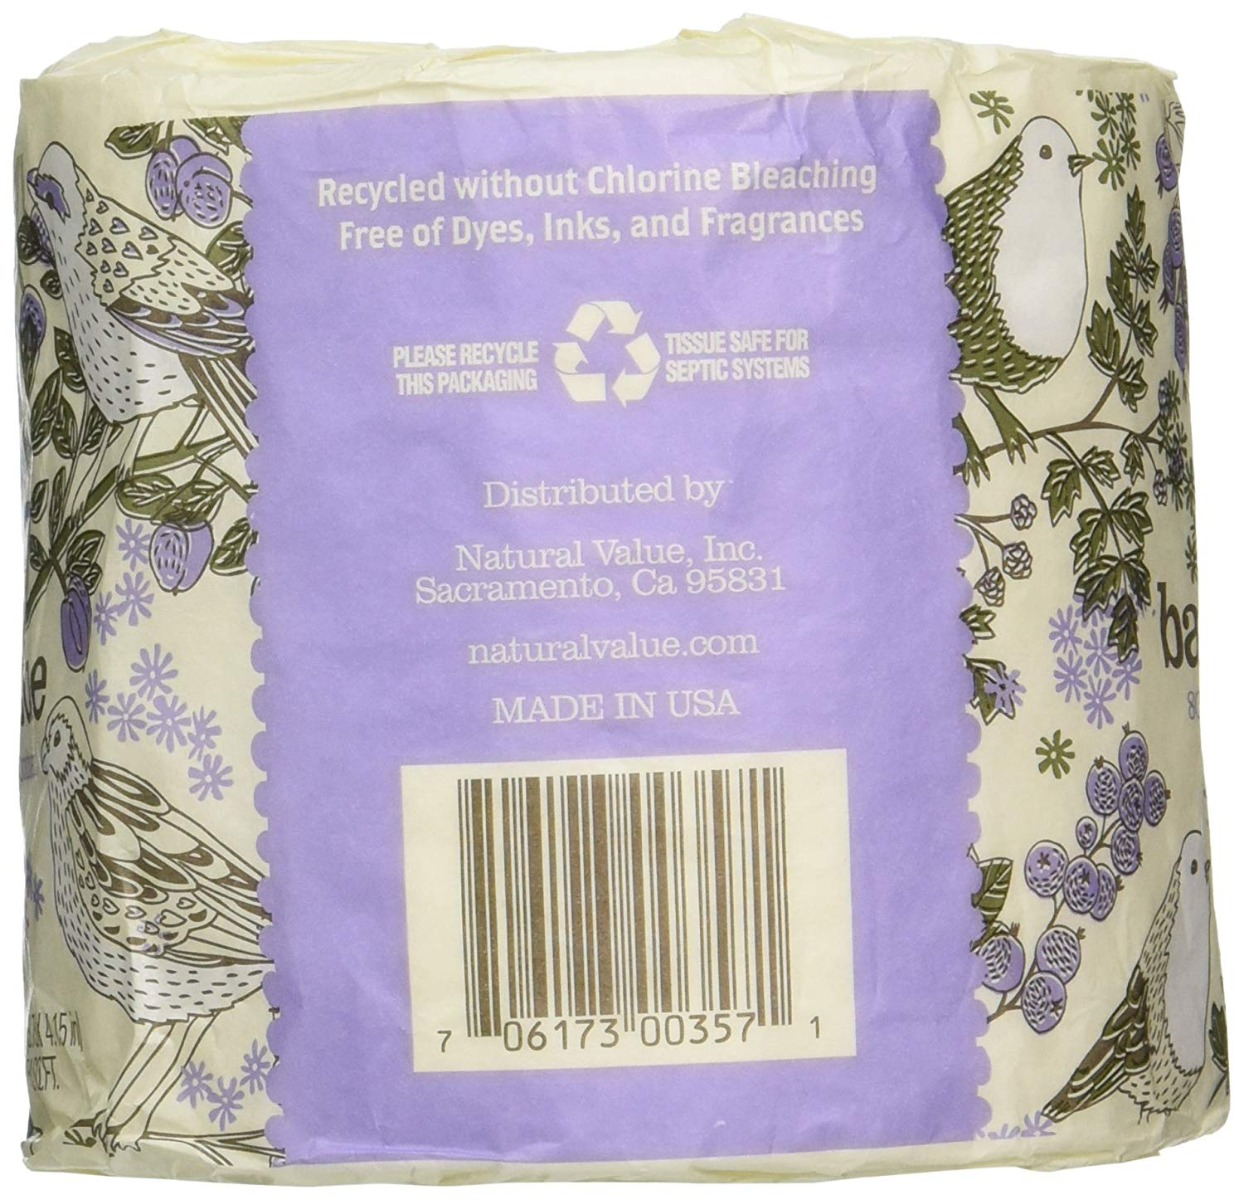 NATURAL 100% Recycled Bathroom Tissue Single Roll, 1 ea